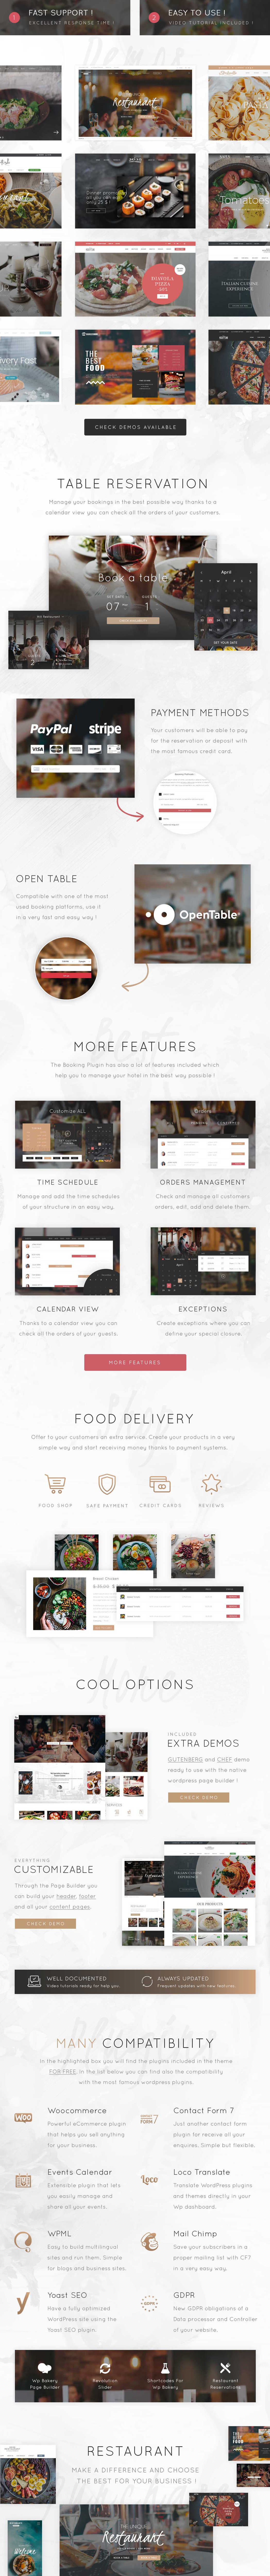 Ristorante - Restaurant WordPress Theme - 1